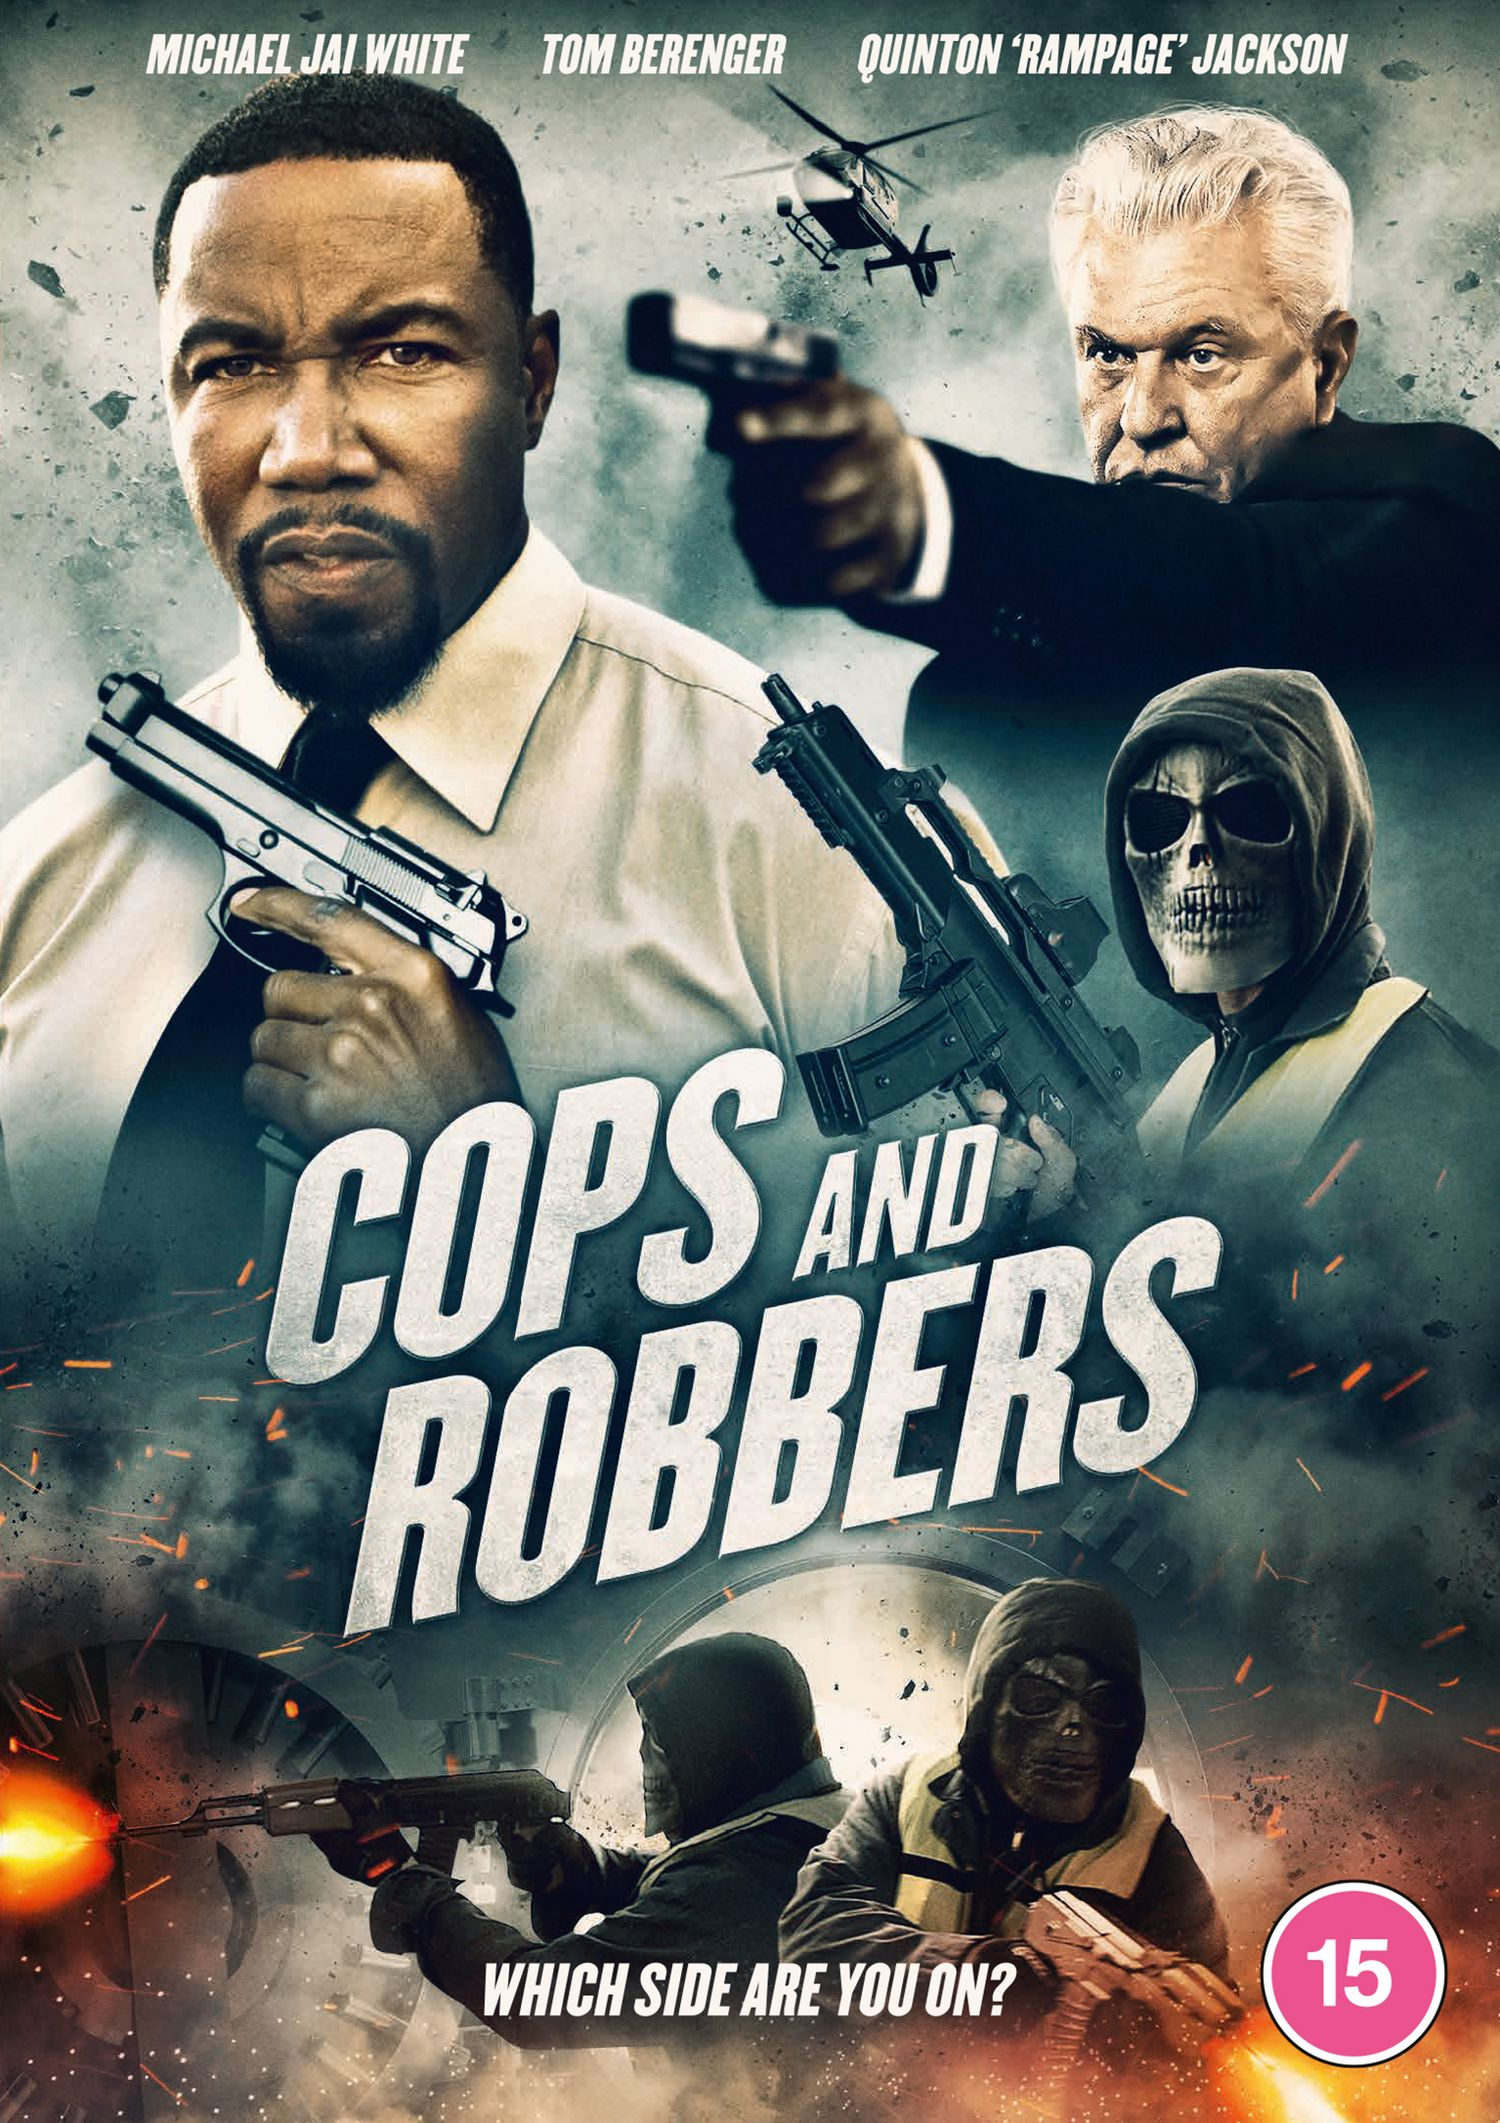 47822_2_COPS-AND-ROBBERS_DVD_2D_PACKSHOT